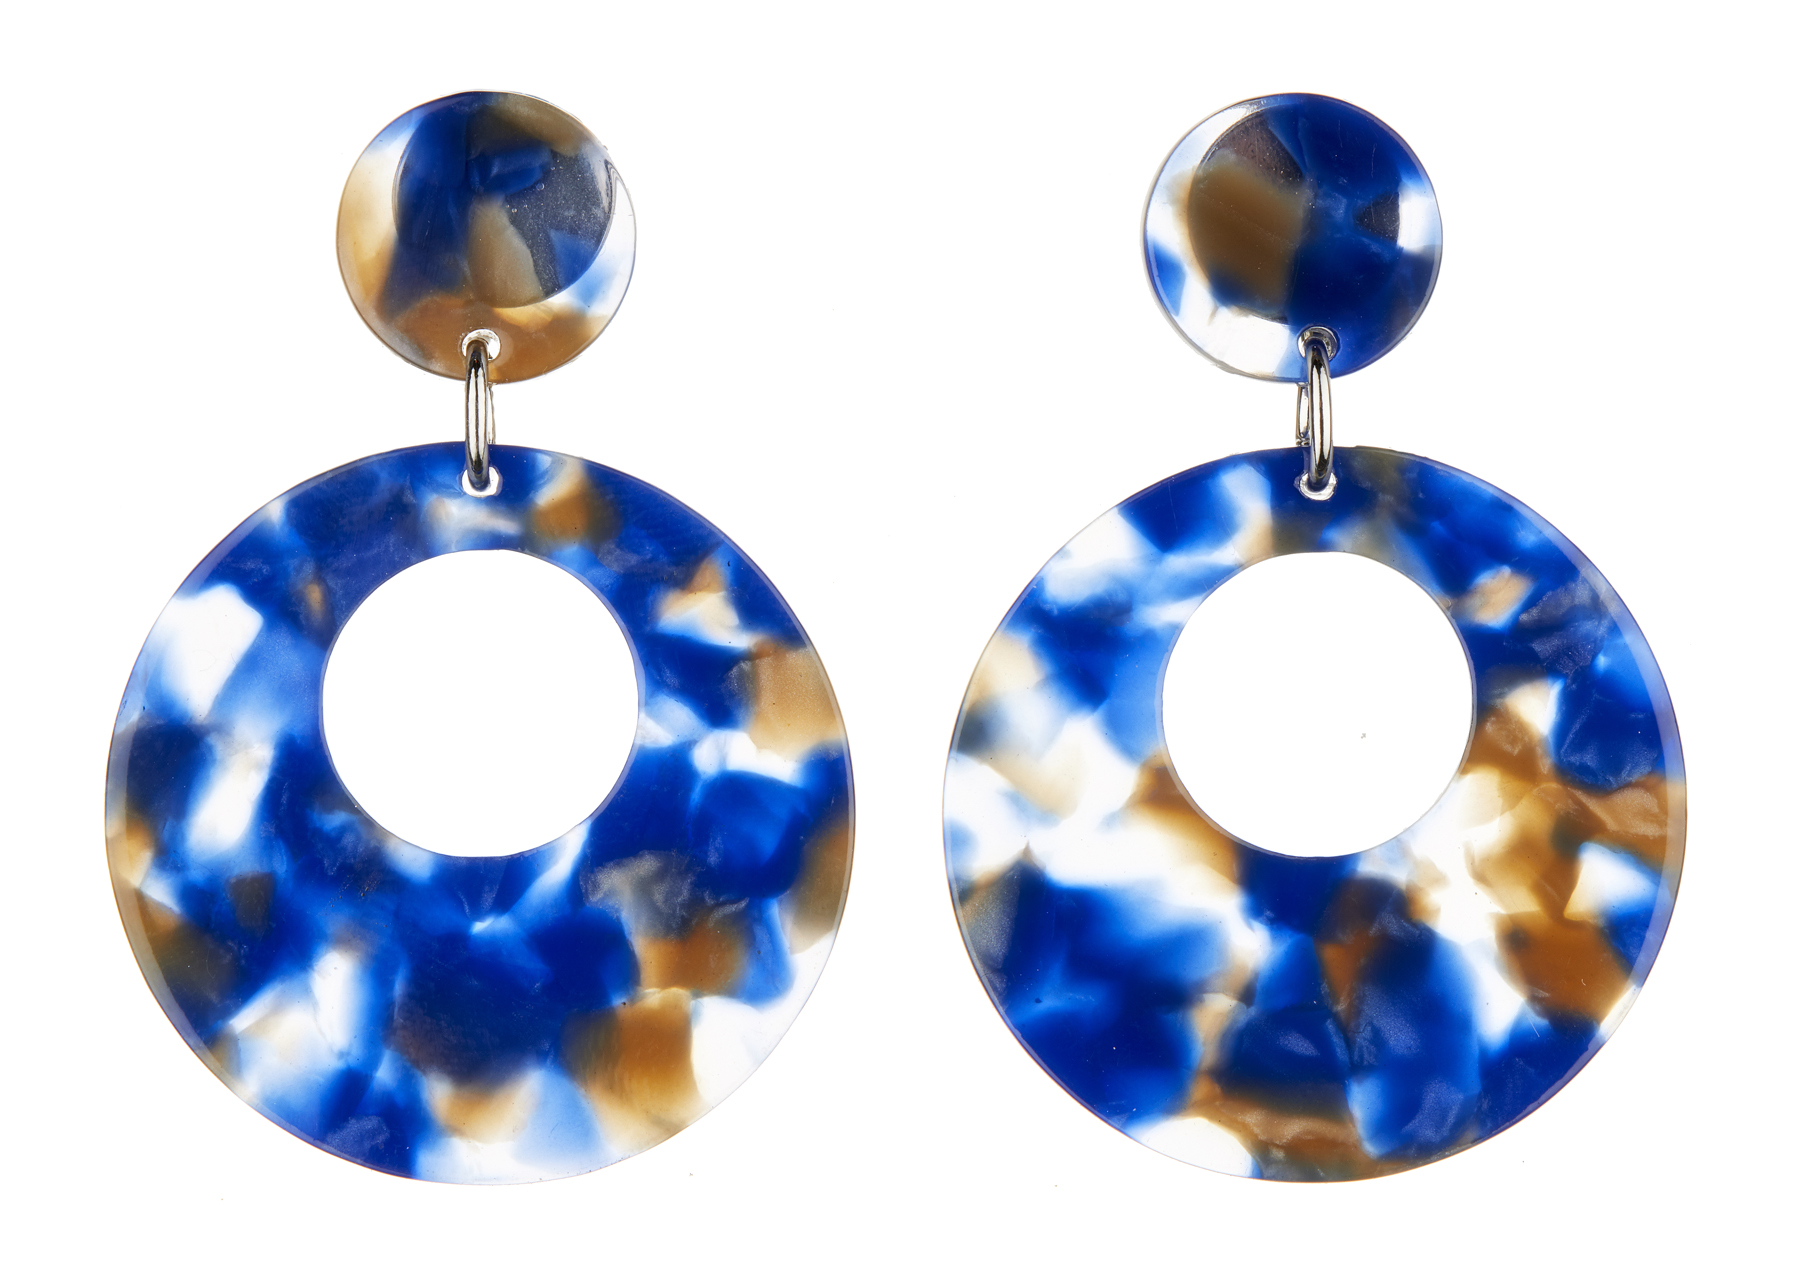 Clip On Earrings - Elica BL - silver drop earring with blue acrylic